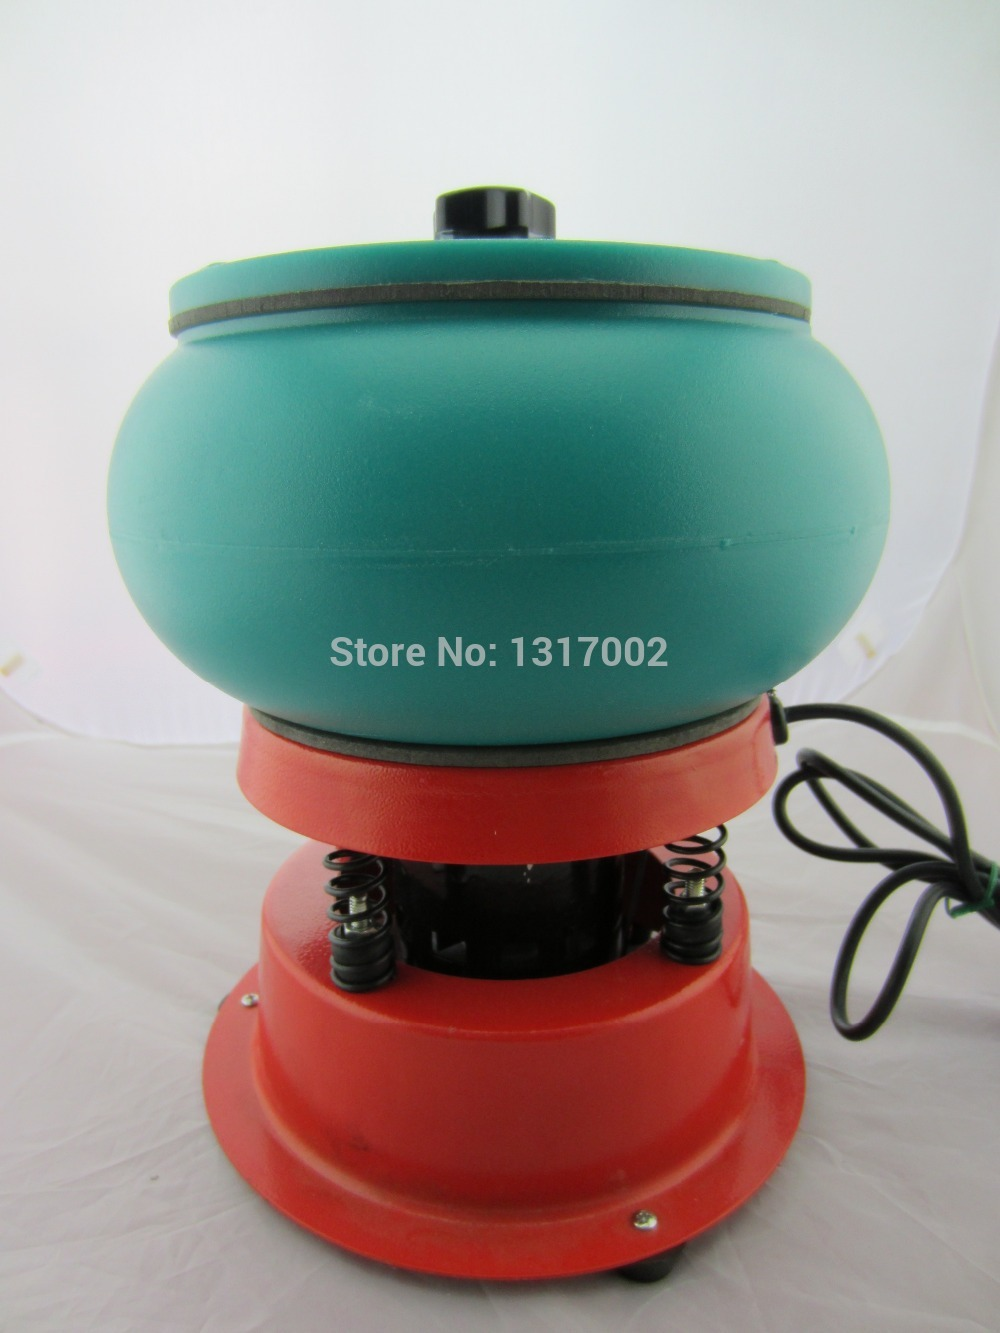 Vibrating Tumbler, Tumbling Polishing machine, Jewelery gold silver gemstone Polisher, Color randomization black or mint green mint green casual sleeveless hooded top